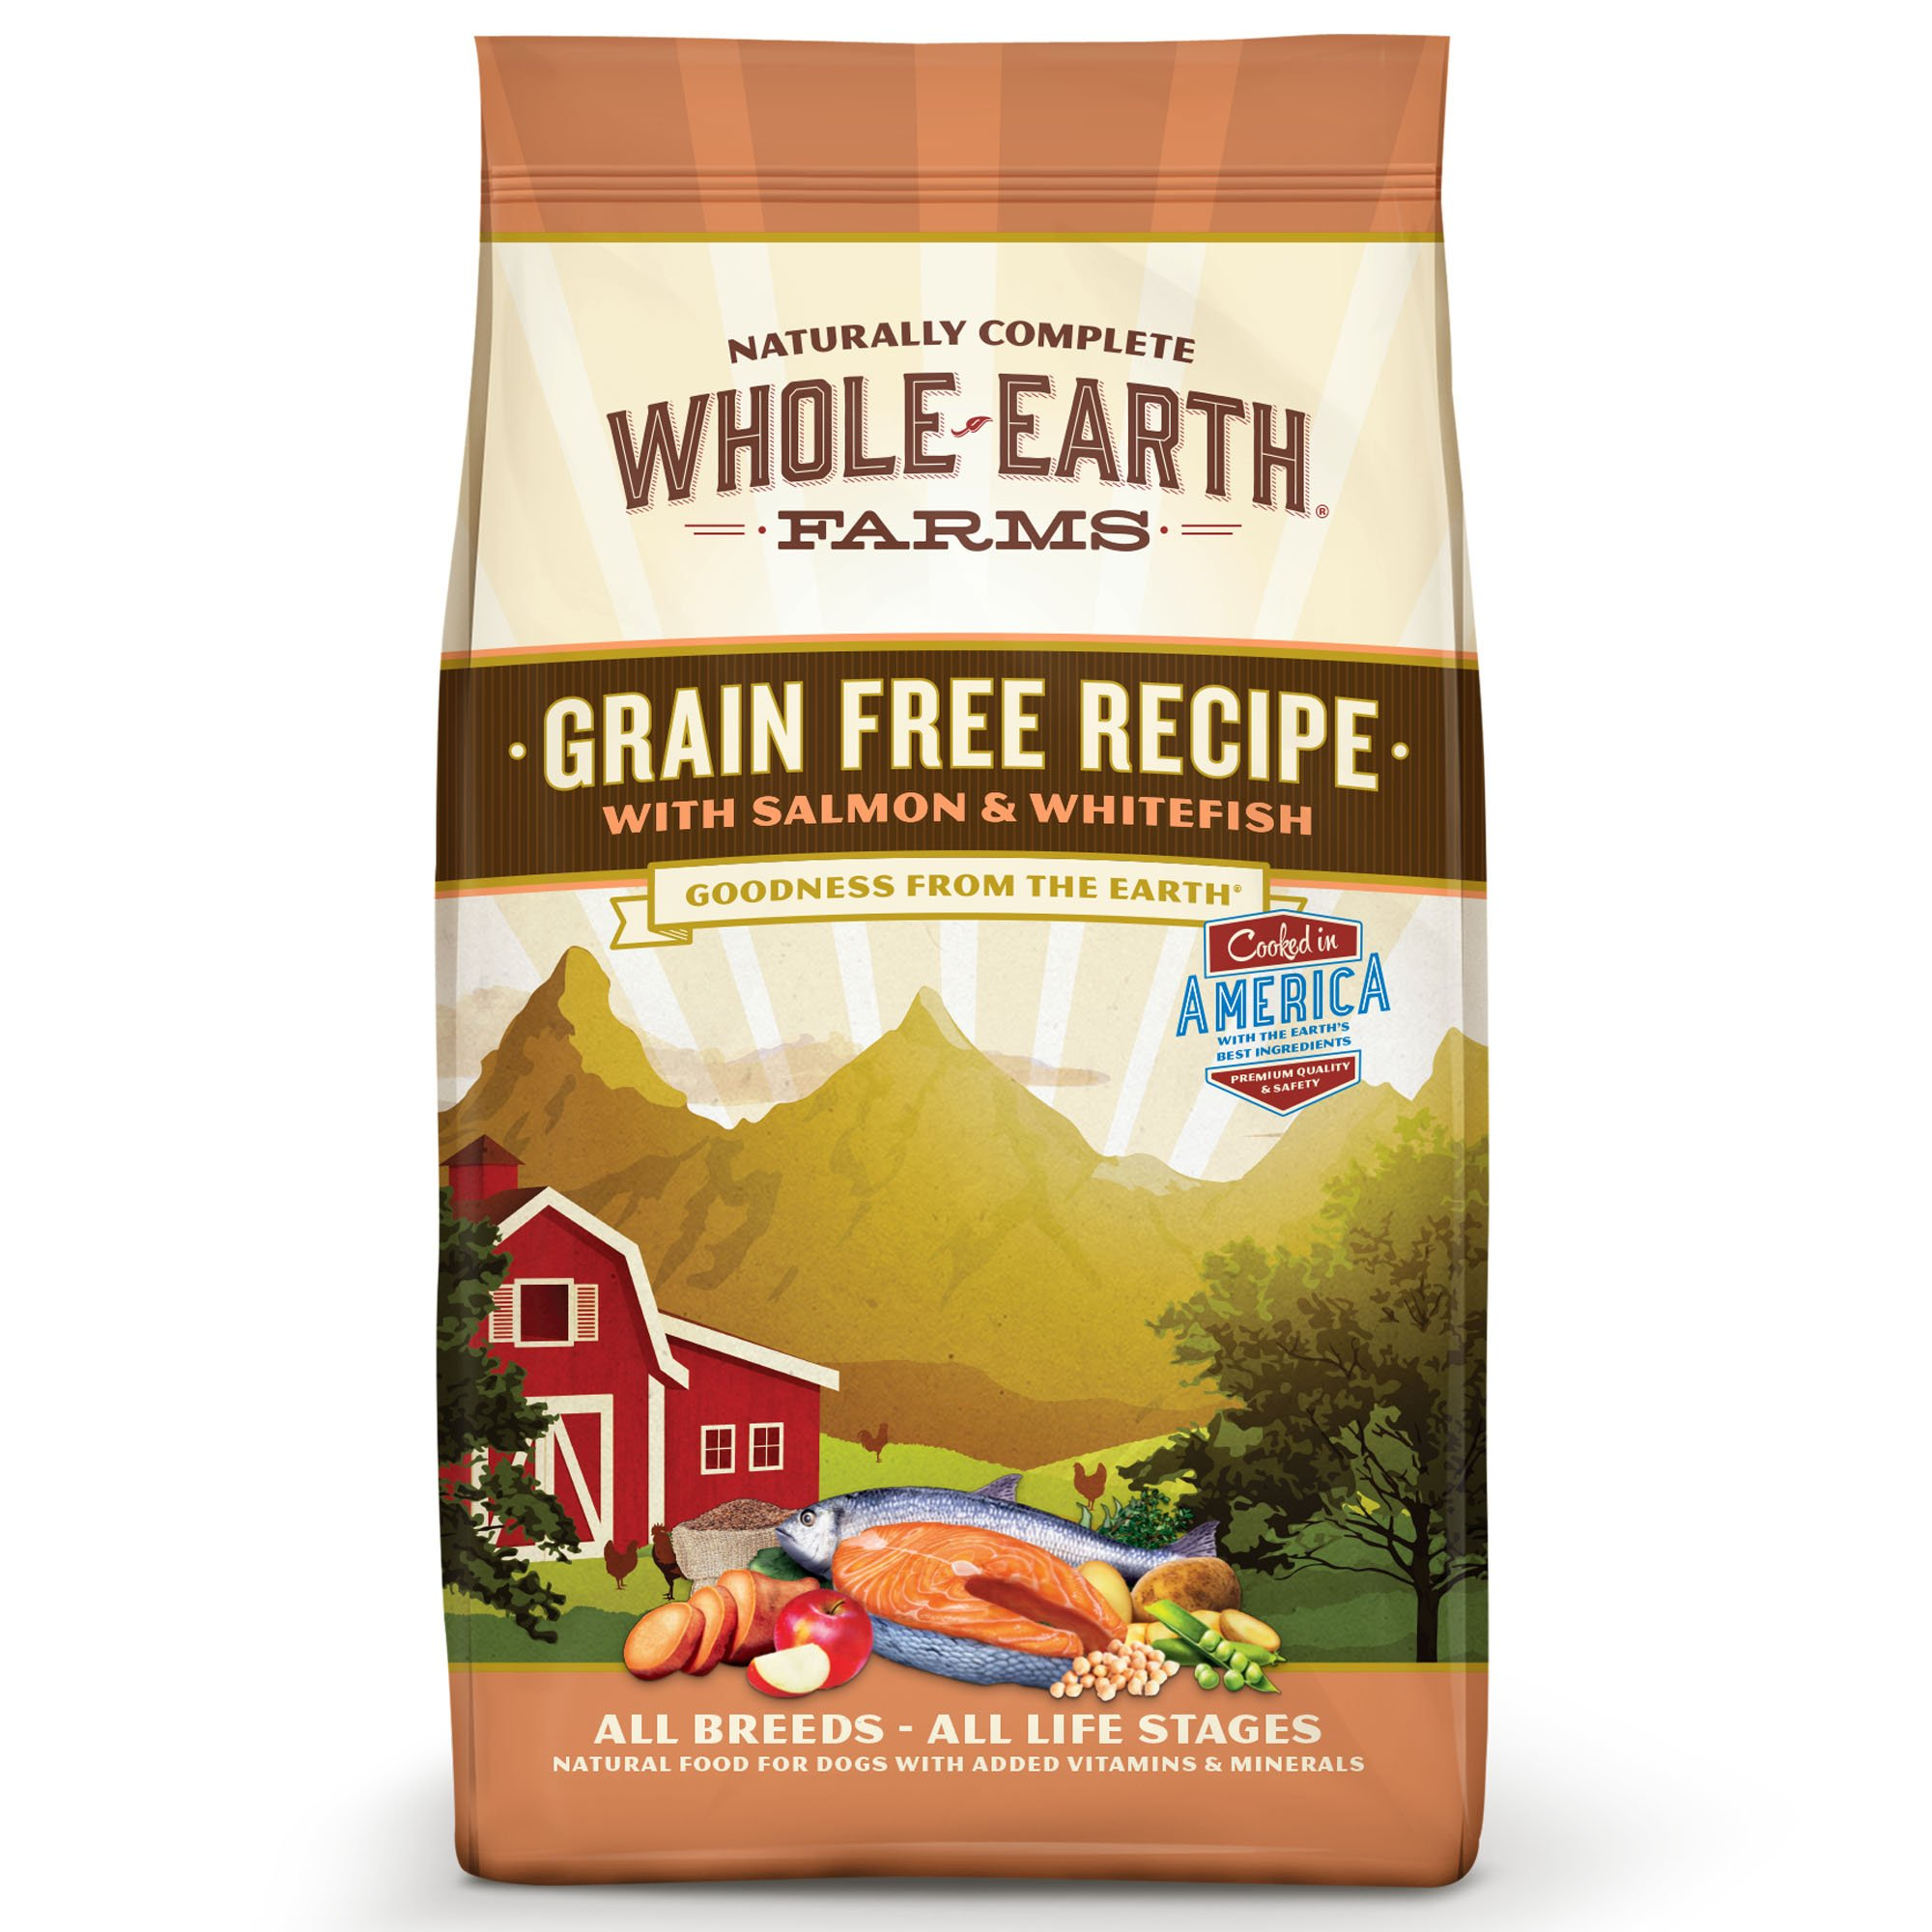 Whole earth farms grain free recipe with salmon whitefish dry dog whole earth farms grain free recipe with salmon whitefish dry dog food petco forumfinder Image collections